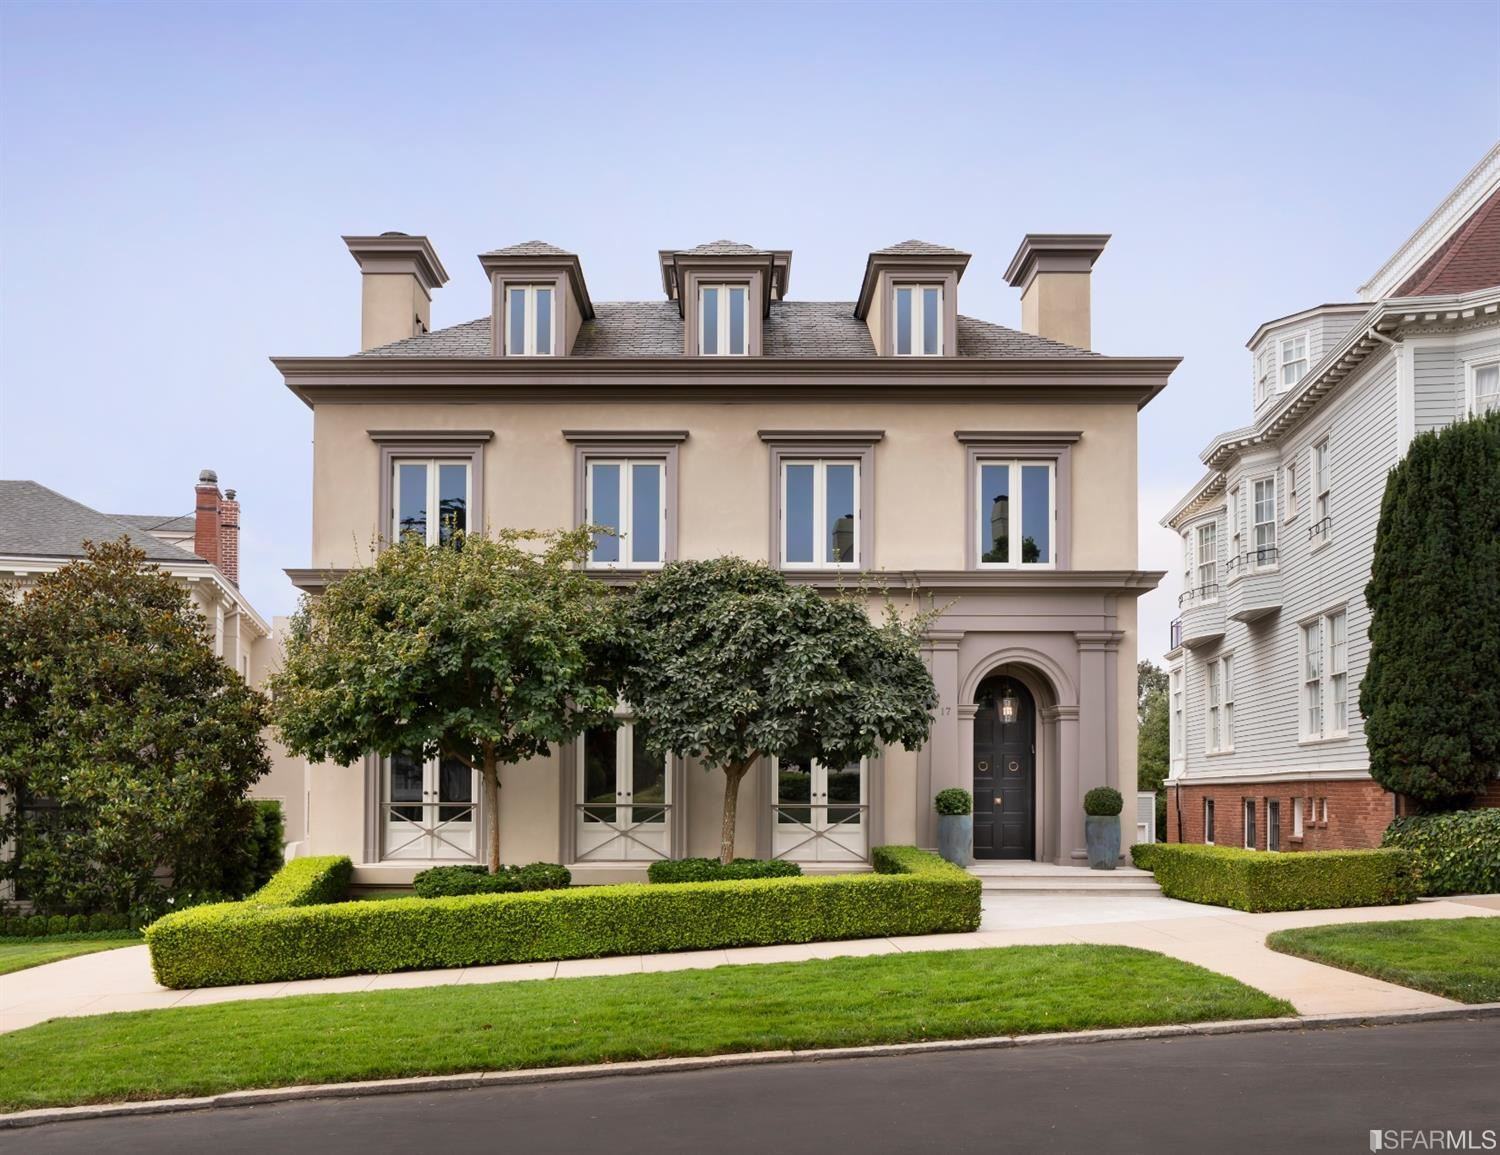 17 Presidio Terrace, San Francisco, CA 94118 - #: 505434